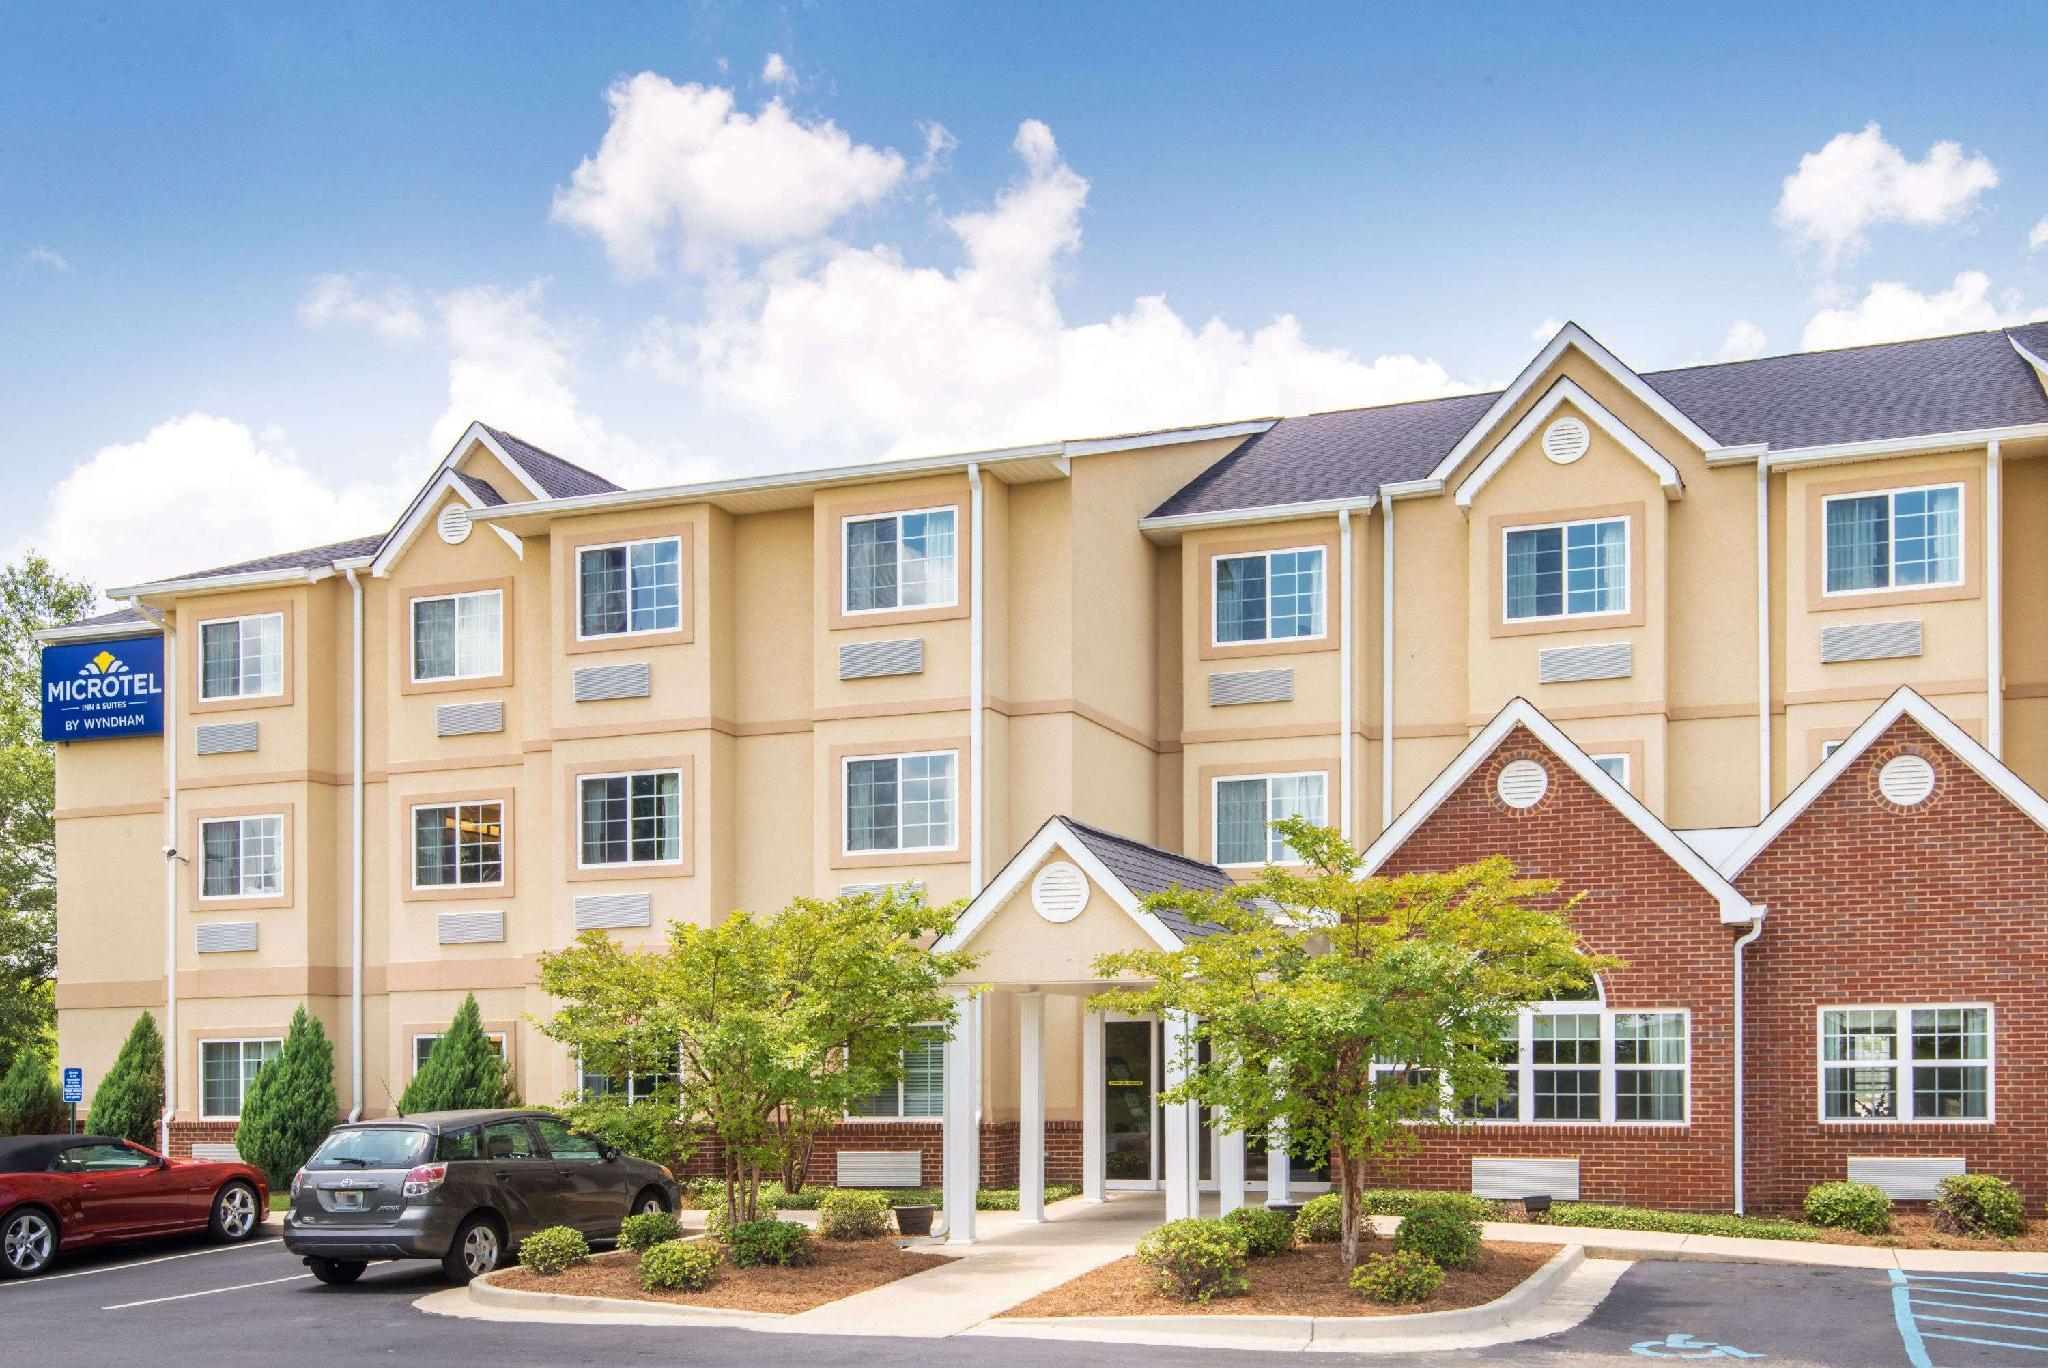 Microtel Inn And Suites By Wyndham Montgomery